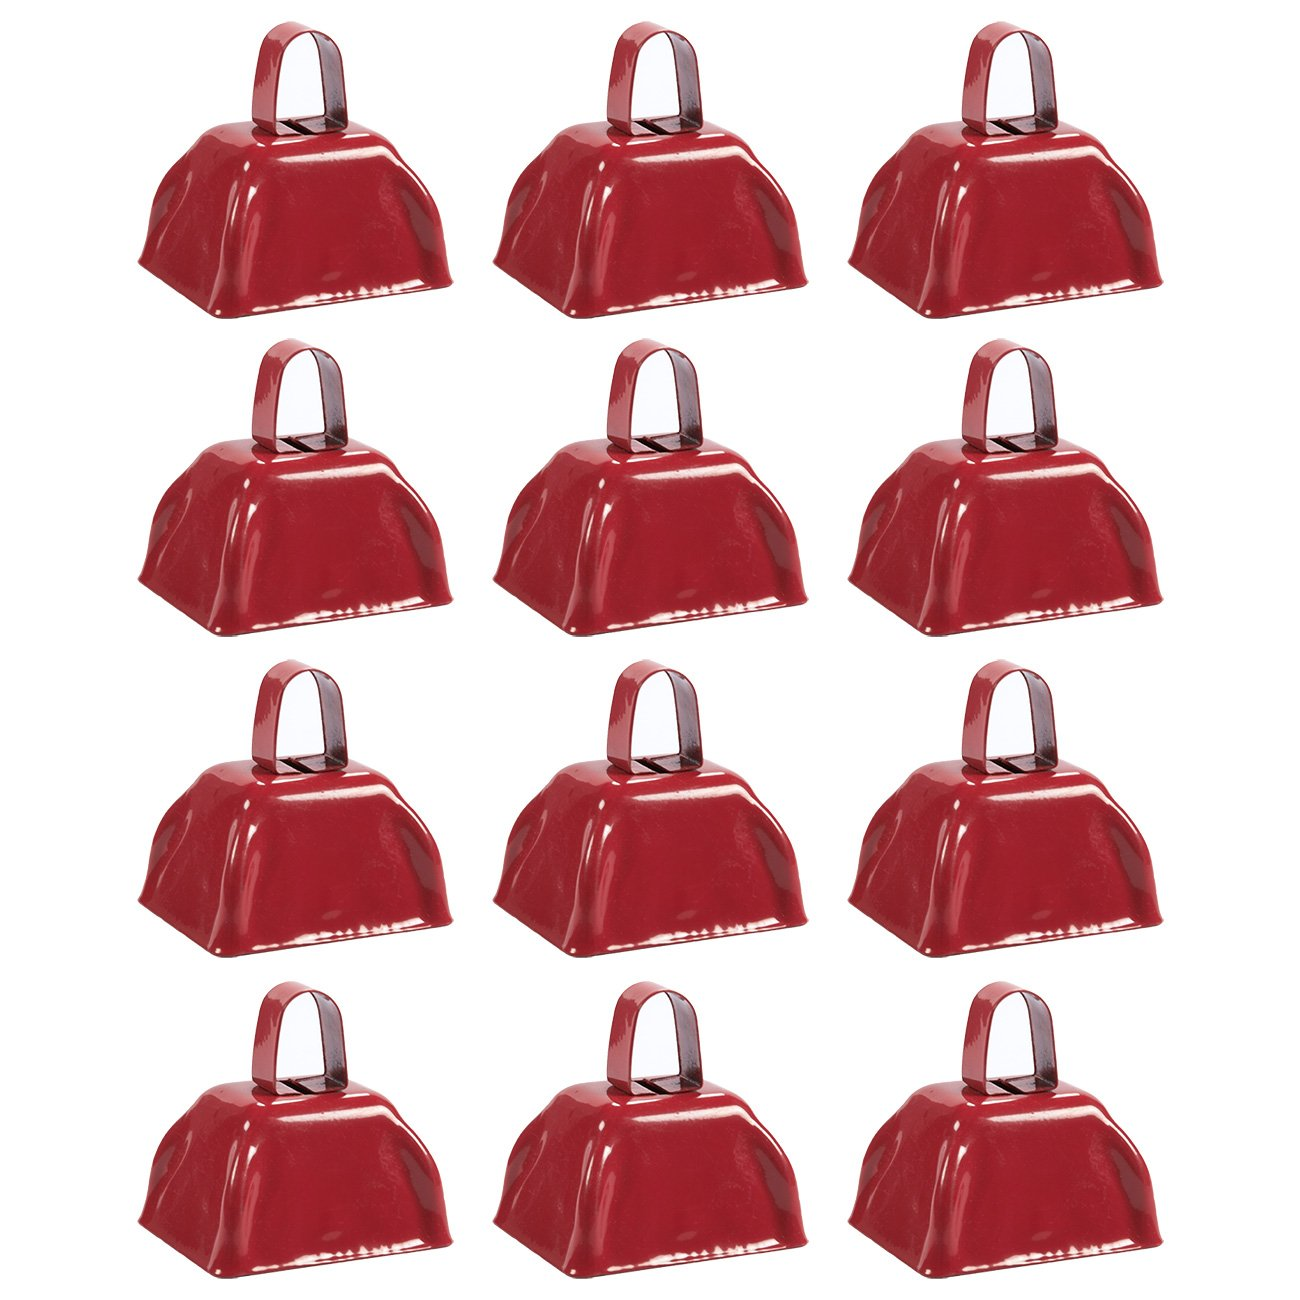 Blue Panda Cow Bell Set - 12-Count Loud Bells with Handles, Cowbells, Noisemaker Call Bells for Football Games, Weddings, Classroom Use, Red - 3 x 2.8 x 2.49 inches by Blue Panda